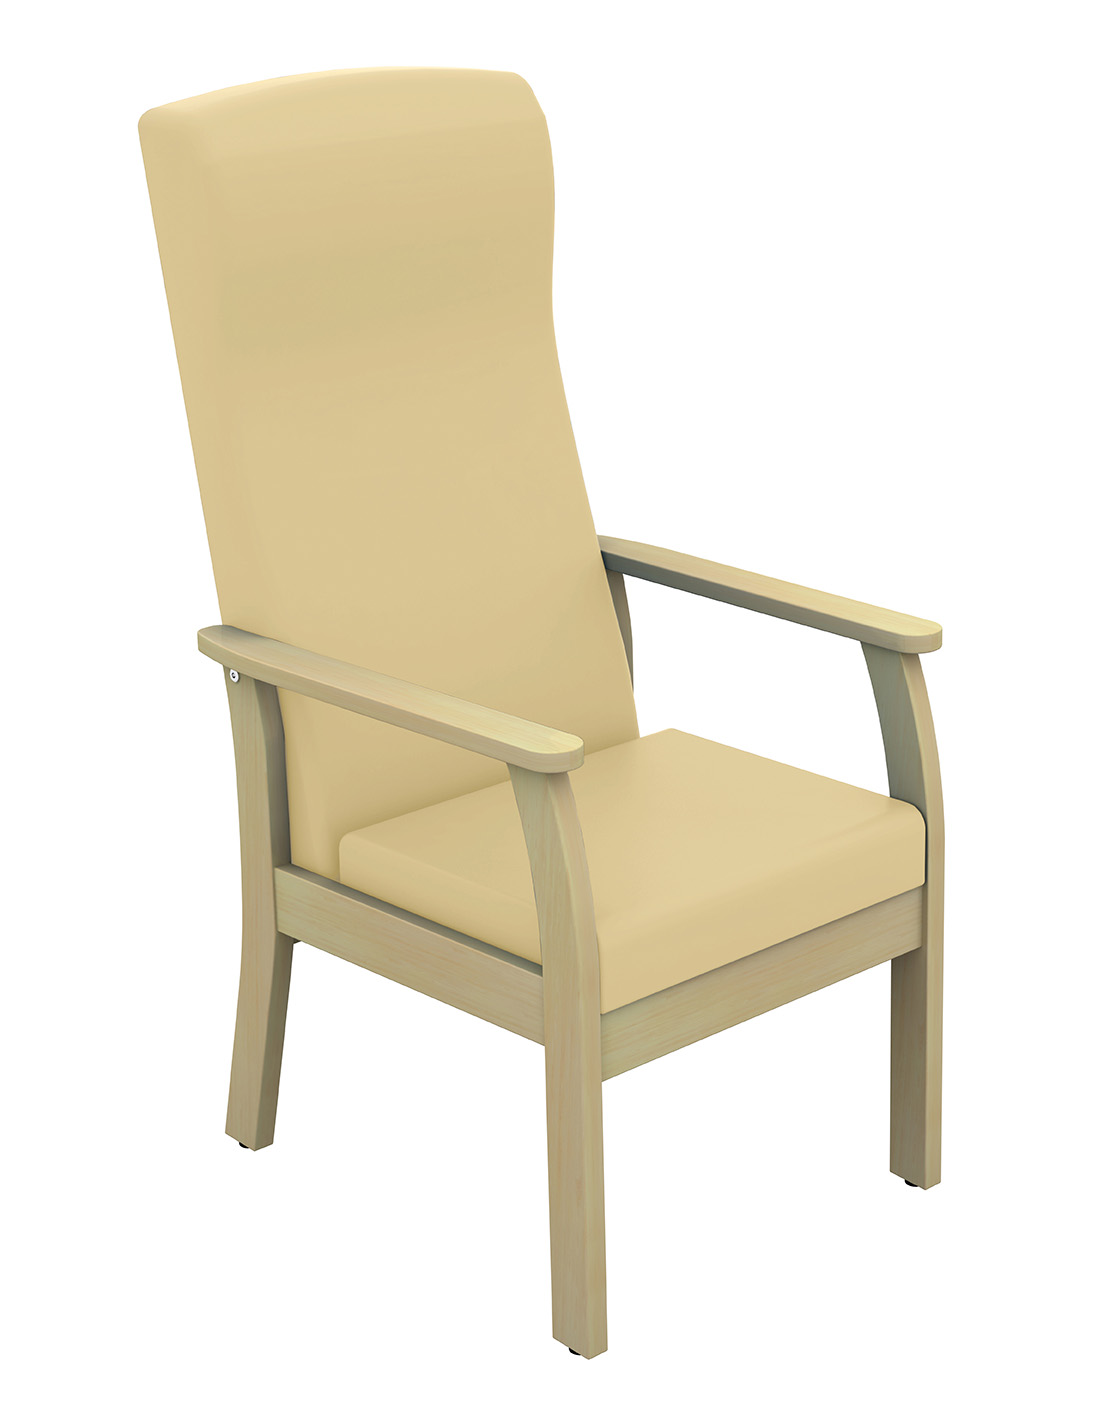 Cheap High Back Patient Arm Chair Vinyl Fabric | Visitors & Waiting Room Chairs | Sun-CHA51/VYL/COLOUR | Sunflower Medical